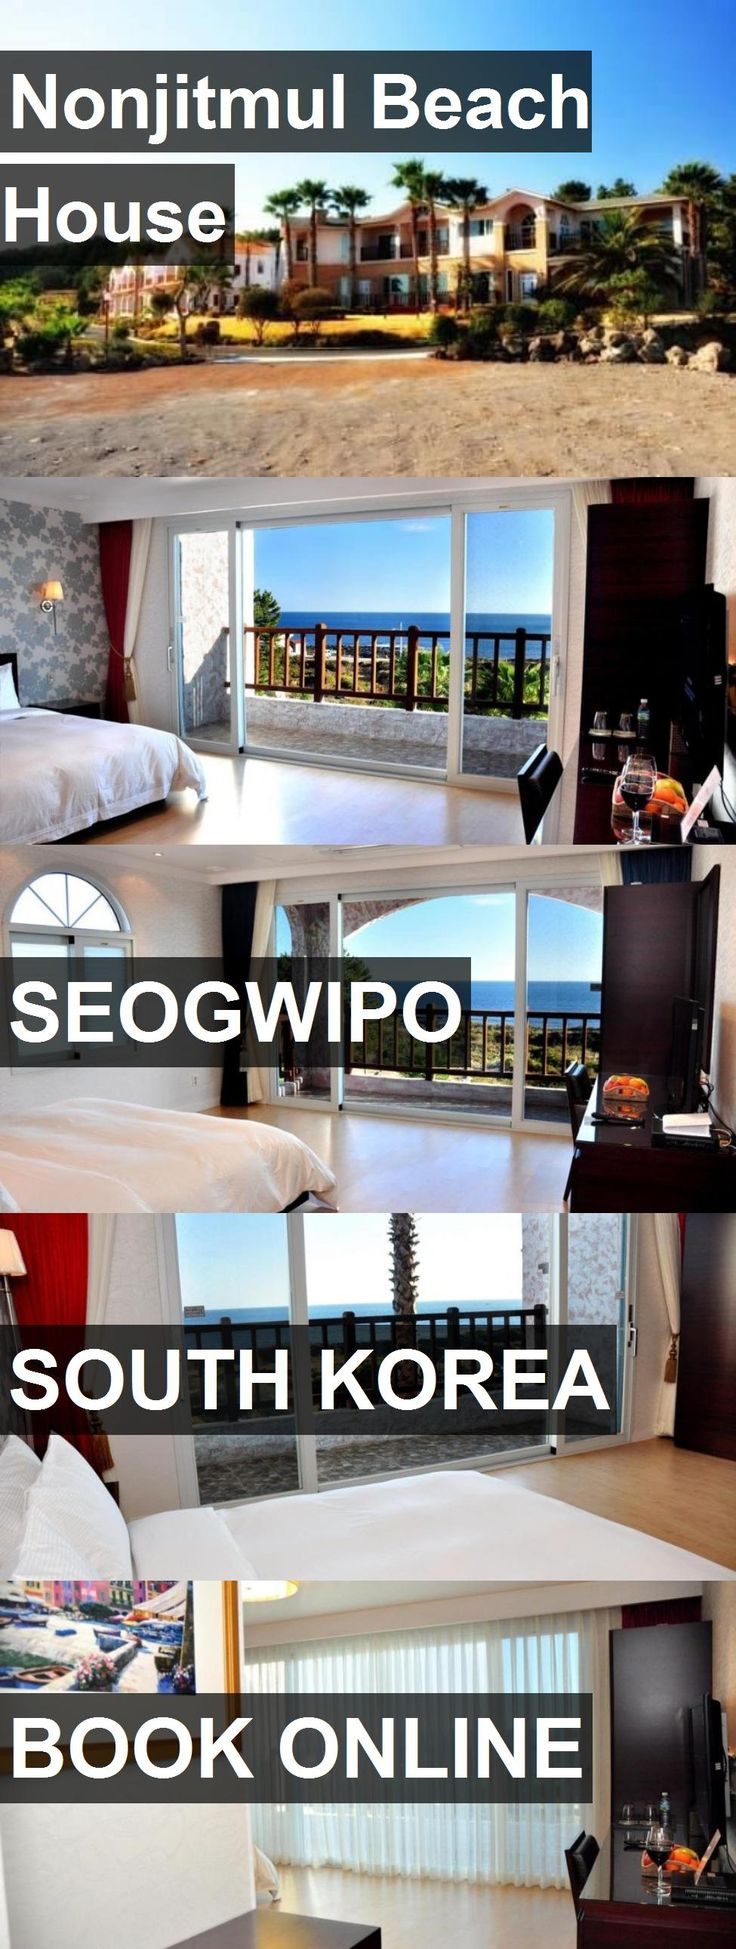 Hotel Nonjitmul Beach House in Seogwipo, South Korea. For more information, photos, reviews and best prices please follow the link. #SouthKorea #Seogwipo #travel #vacation #hotel